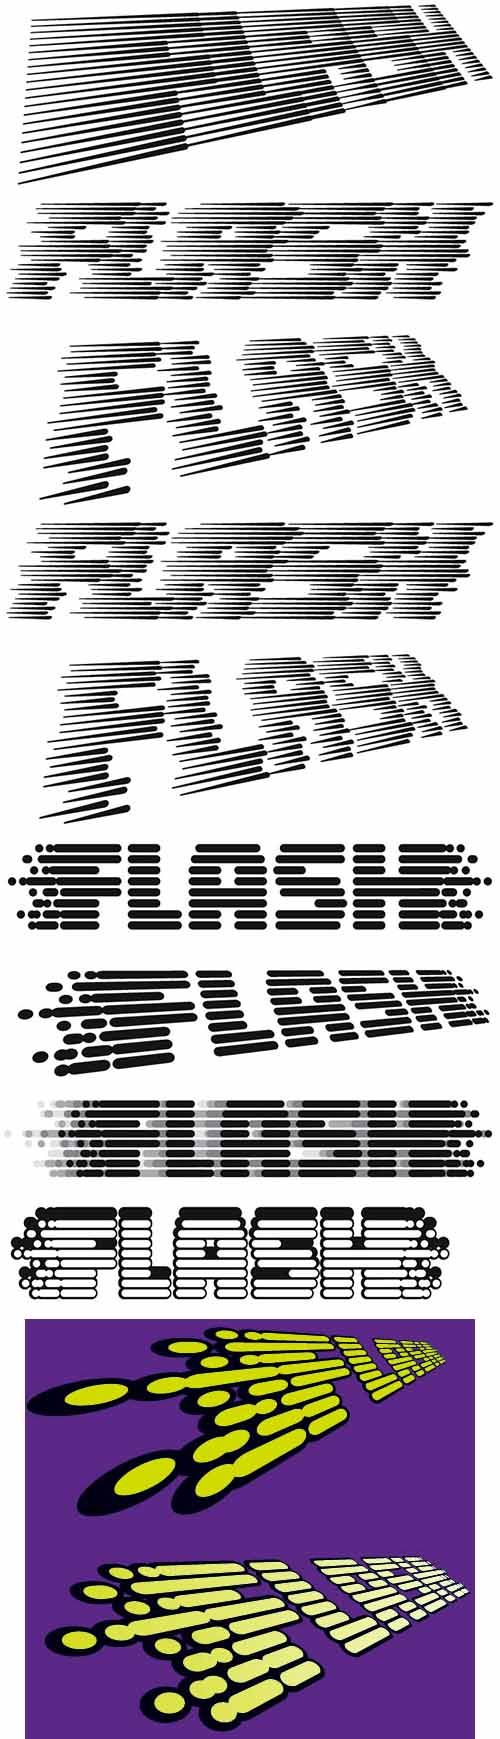 Flash logo versions by Hughes